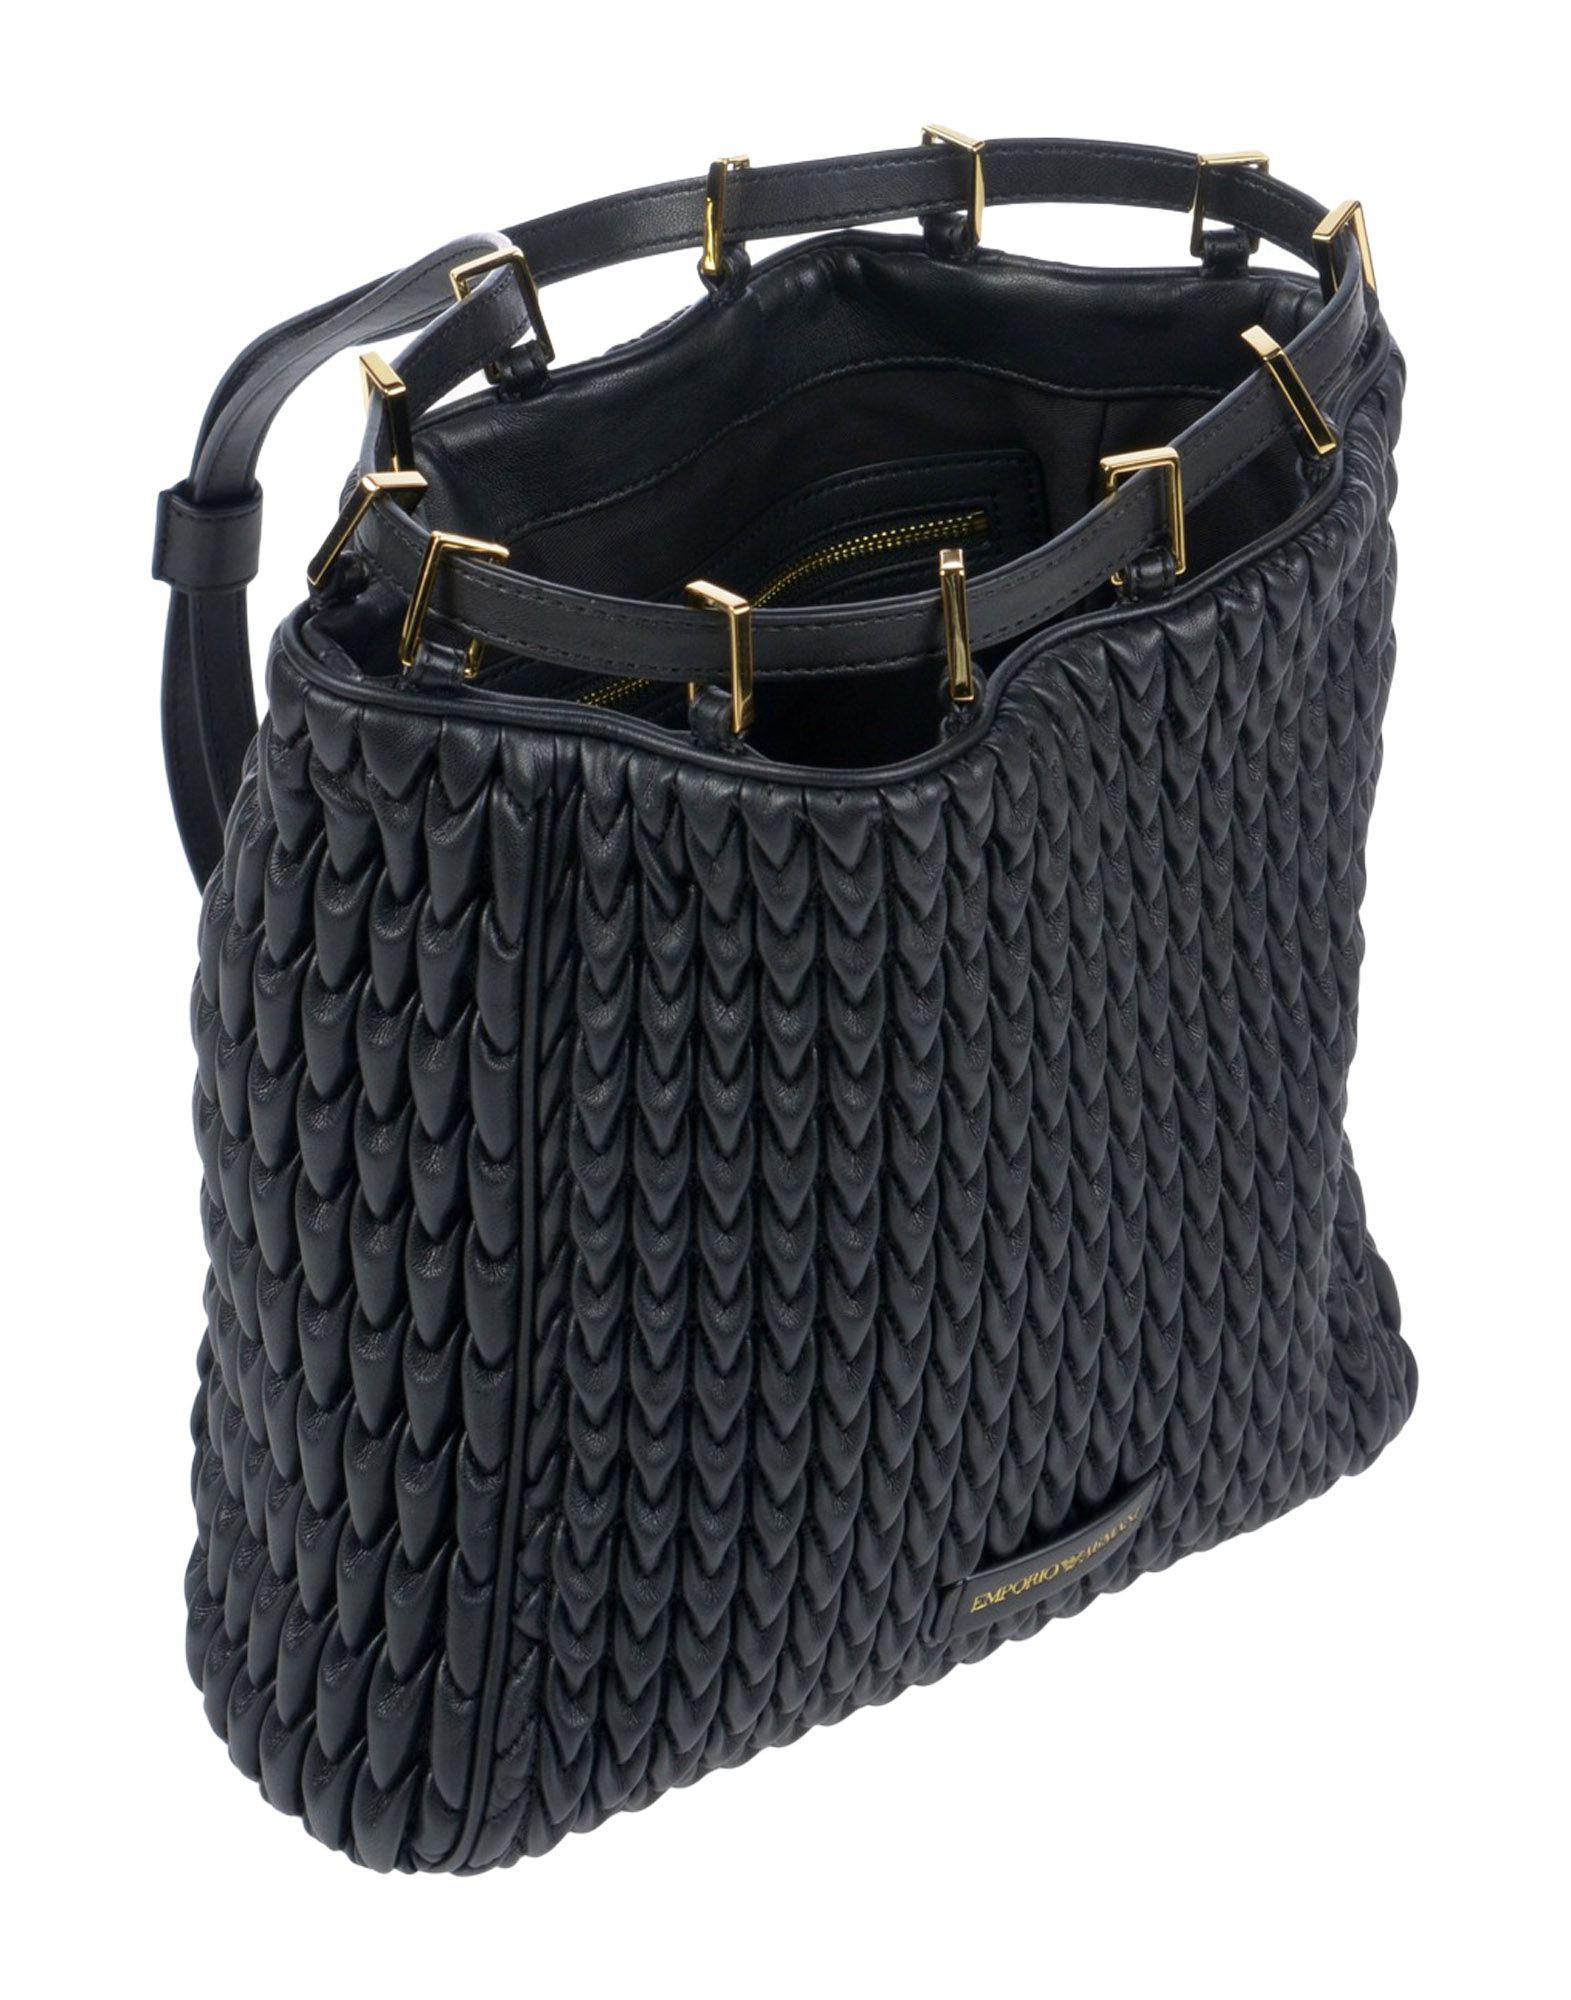 Emporio Armani Backpacks   Bum Bags in Black - Lyst 8a3149dcf26c3